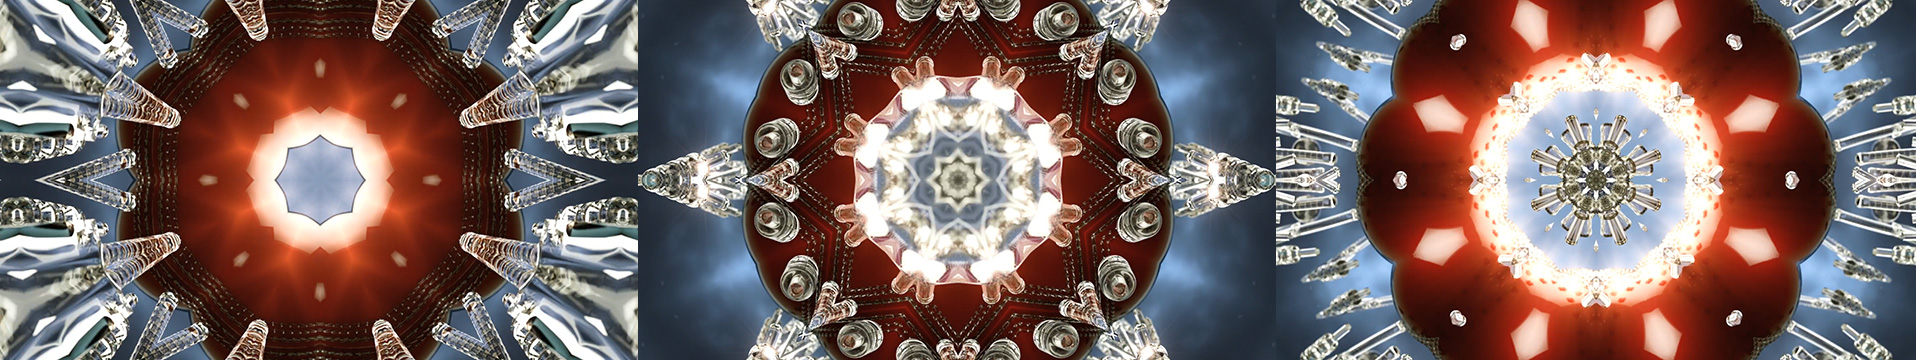 Cricket Kaleidoscope